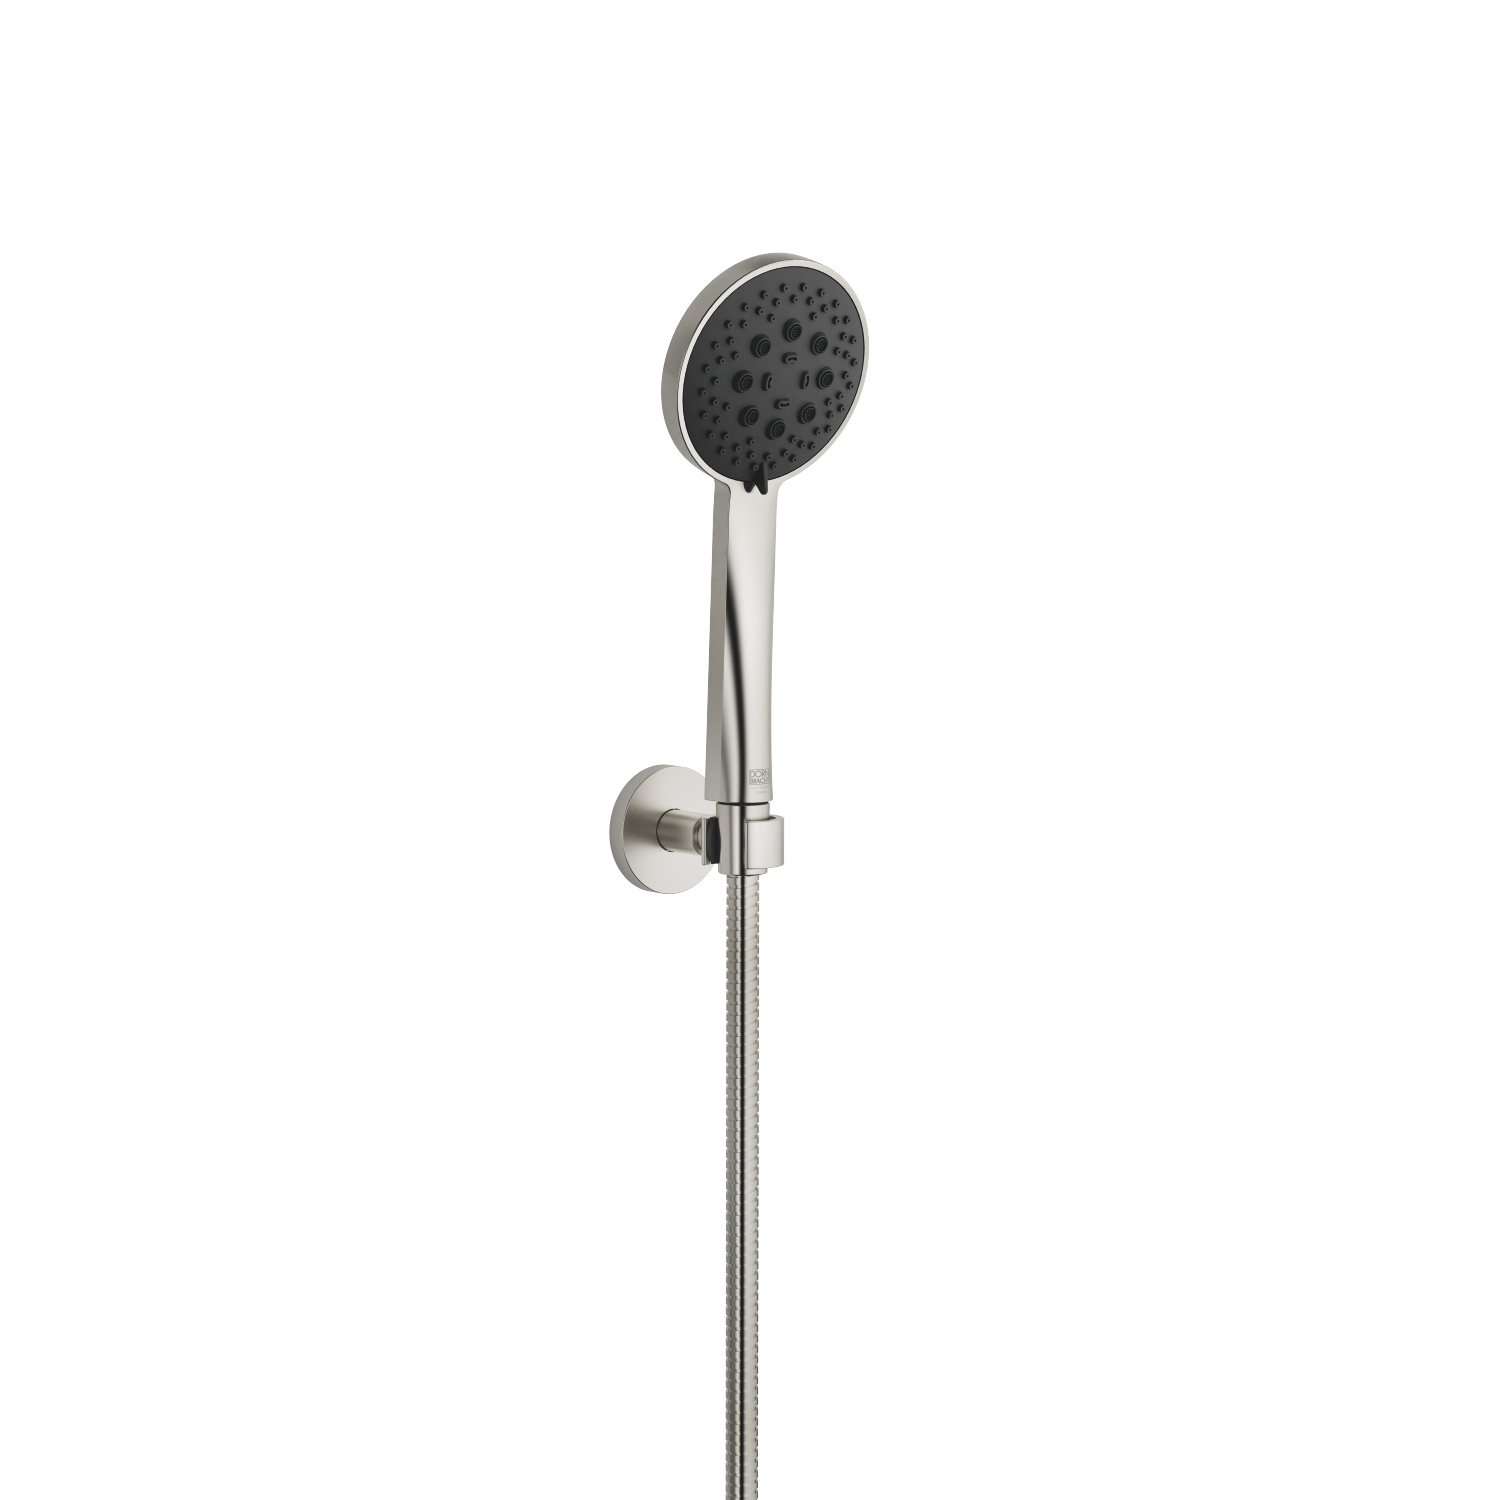 Hand shower set - platinum matt - 27 805 625-06